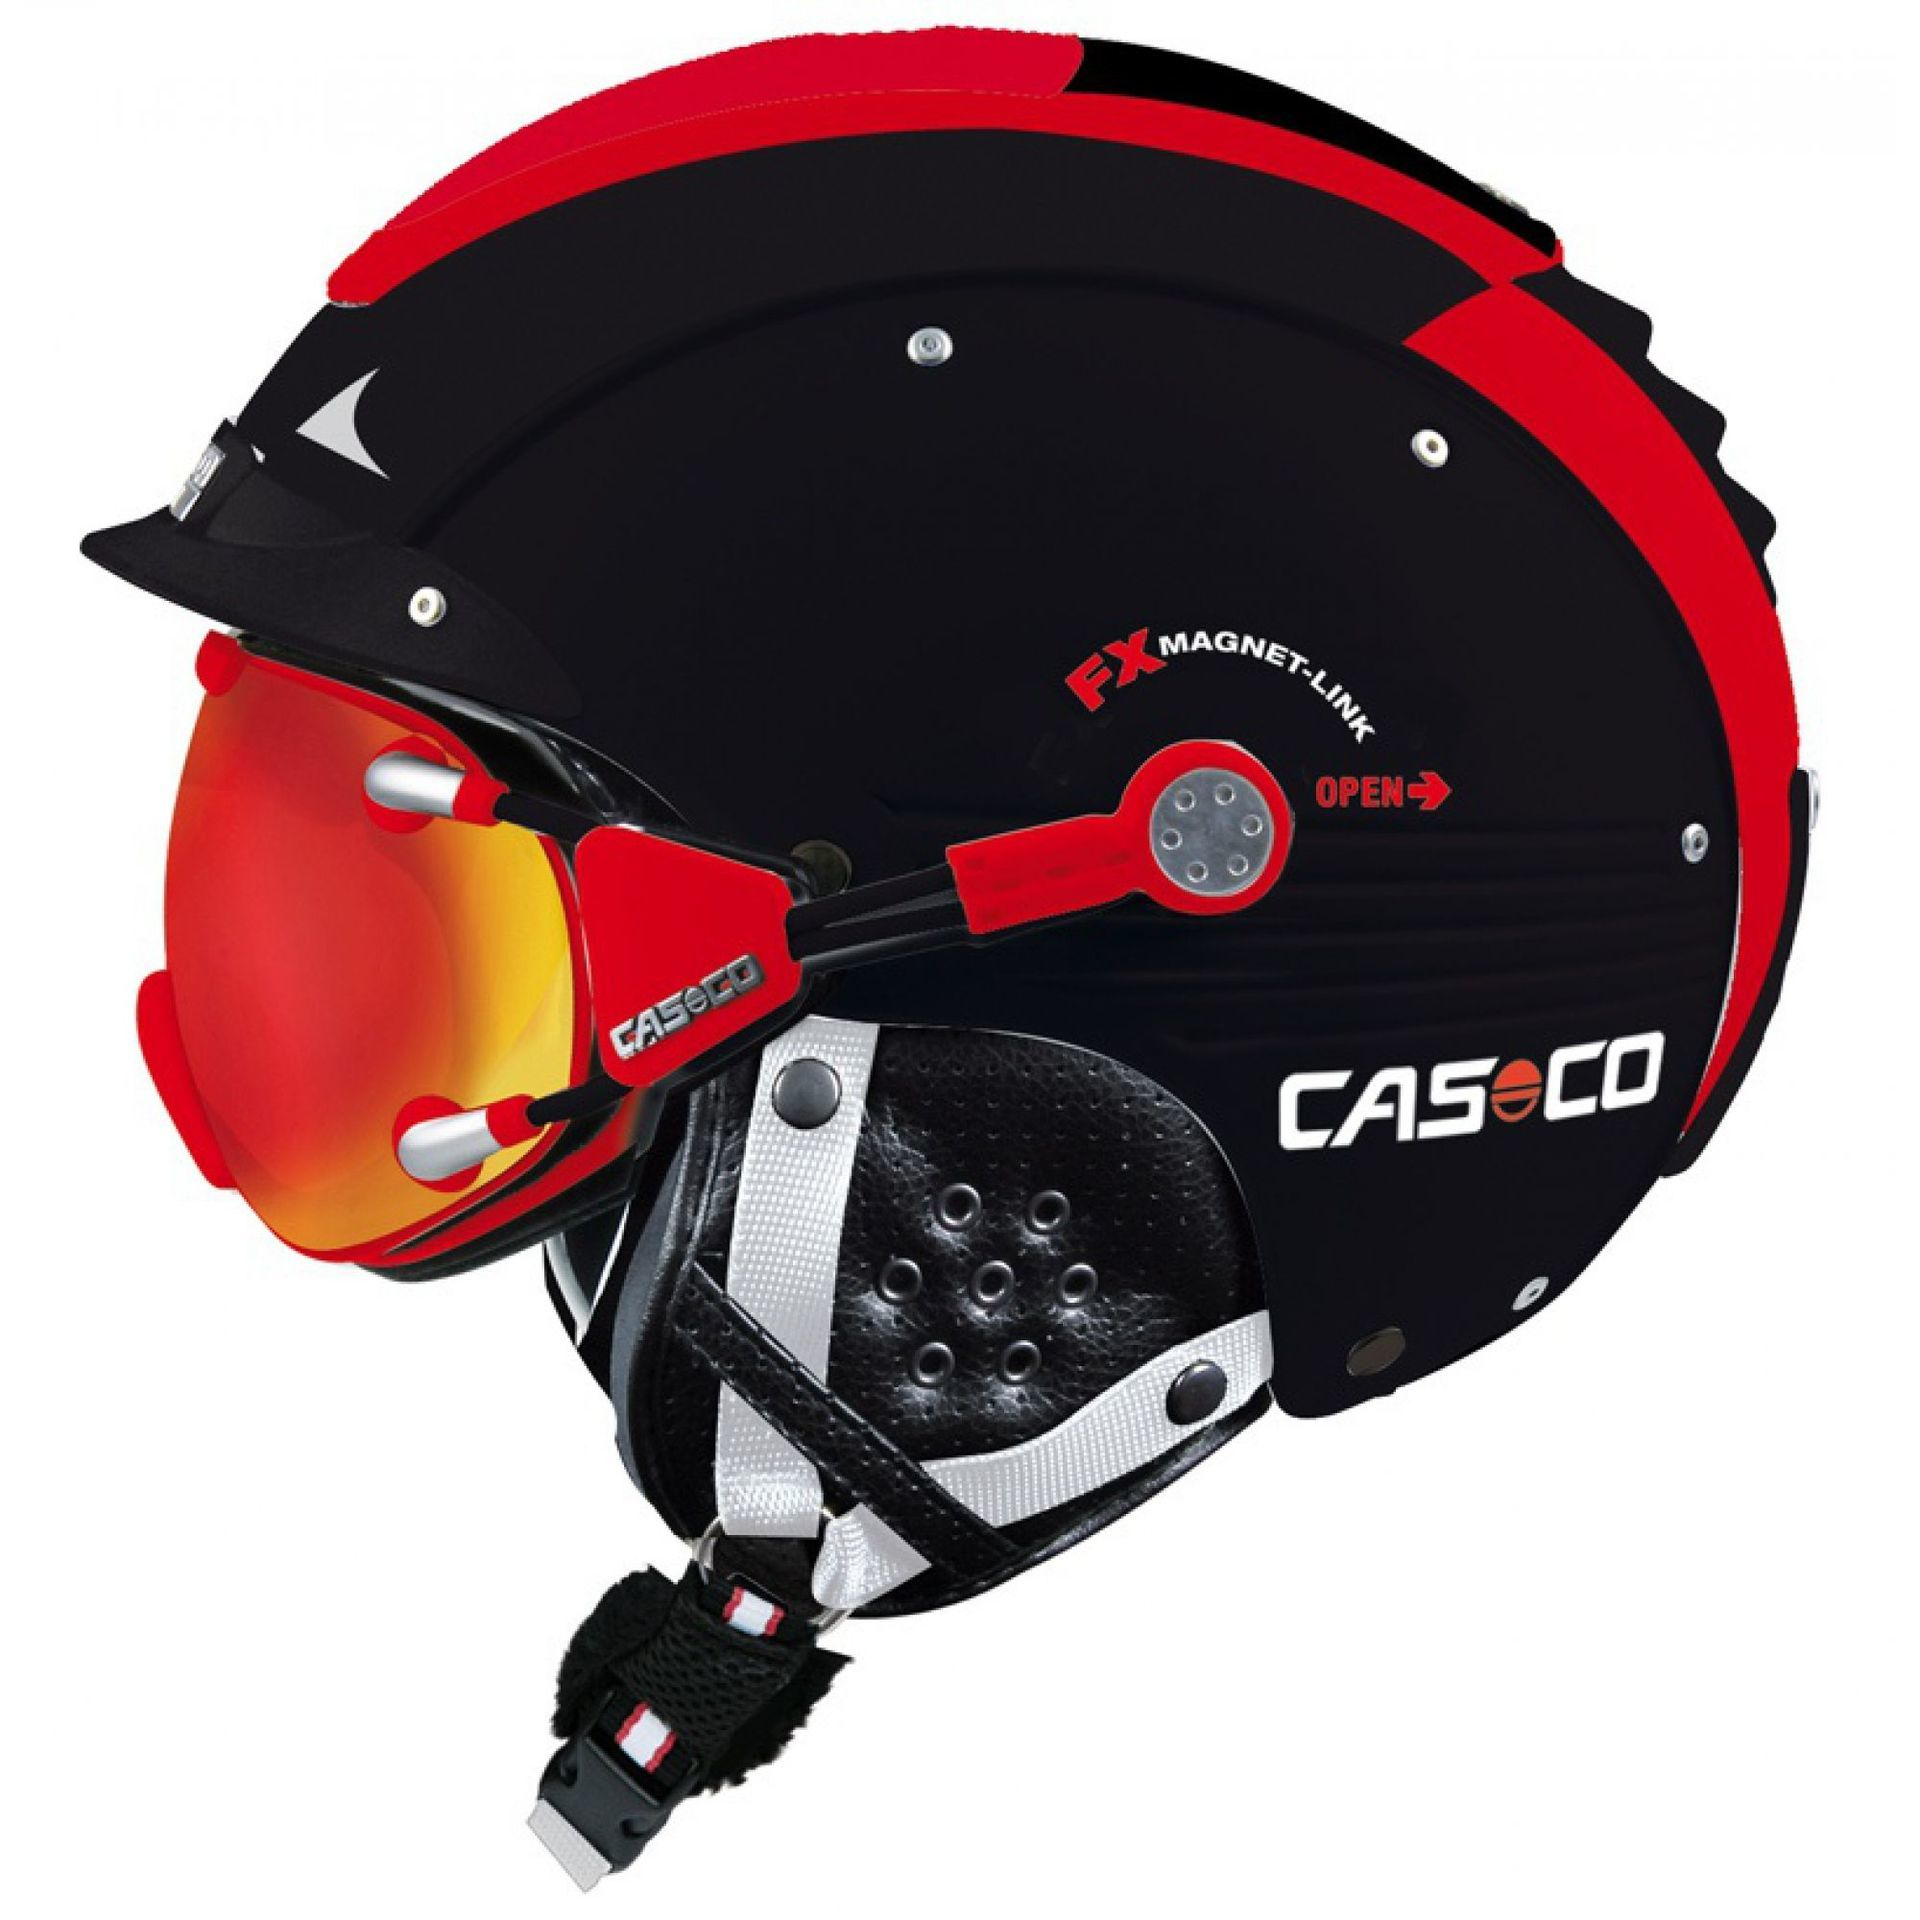 KASK CASCO SP-5 3205 1